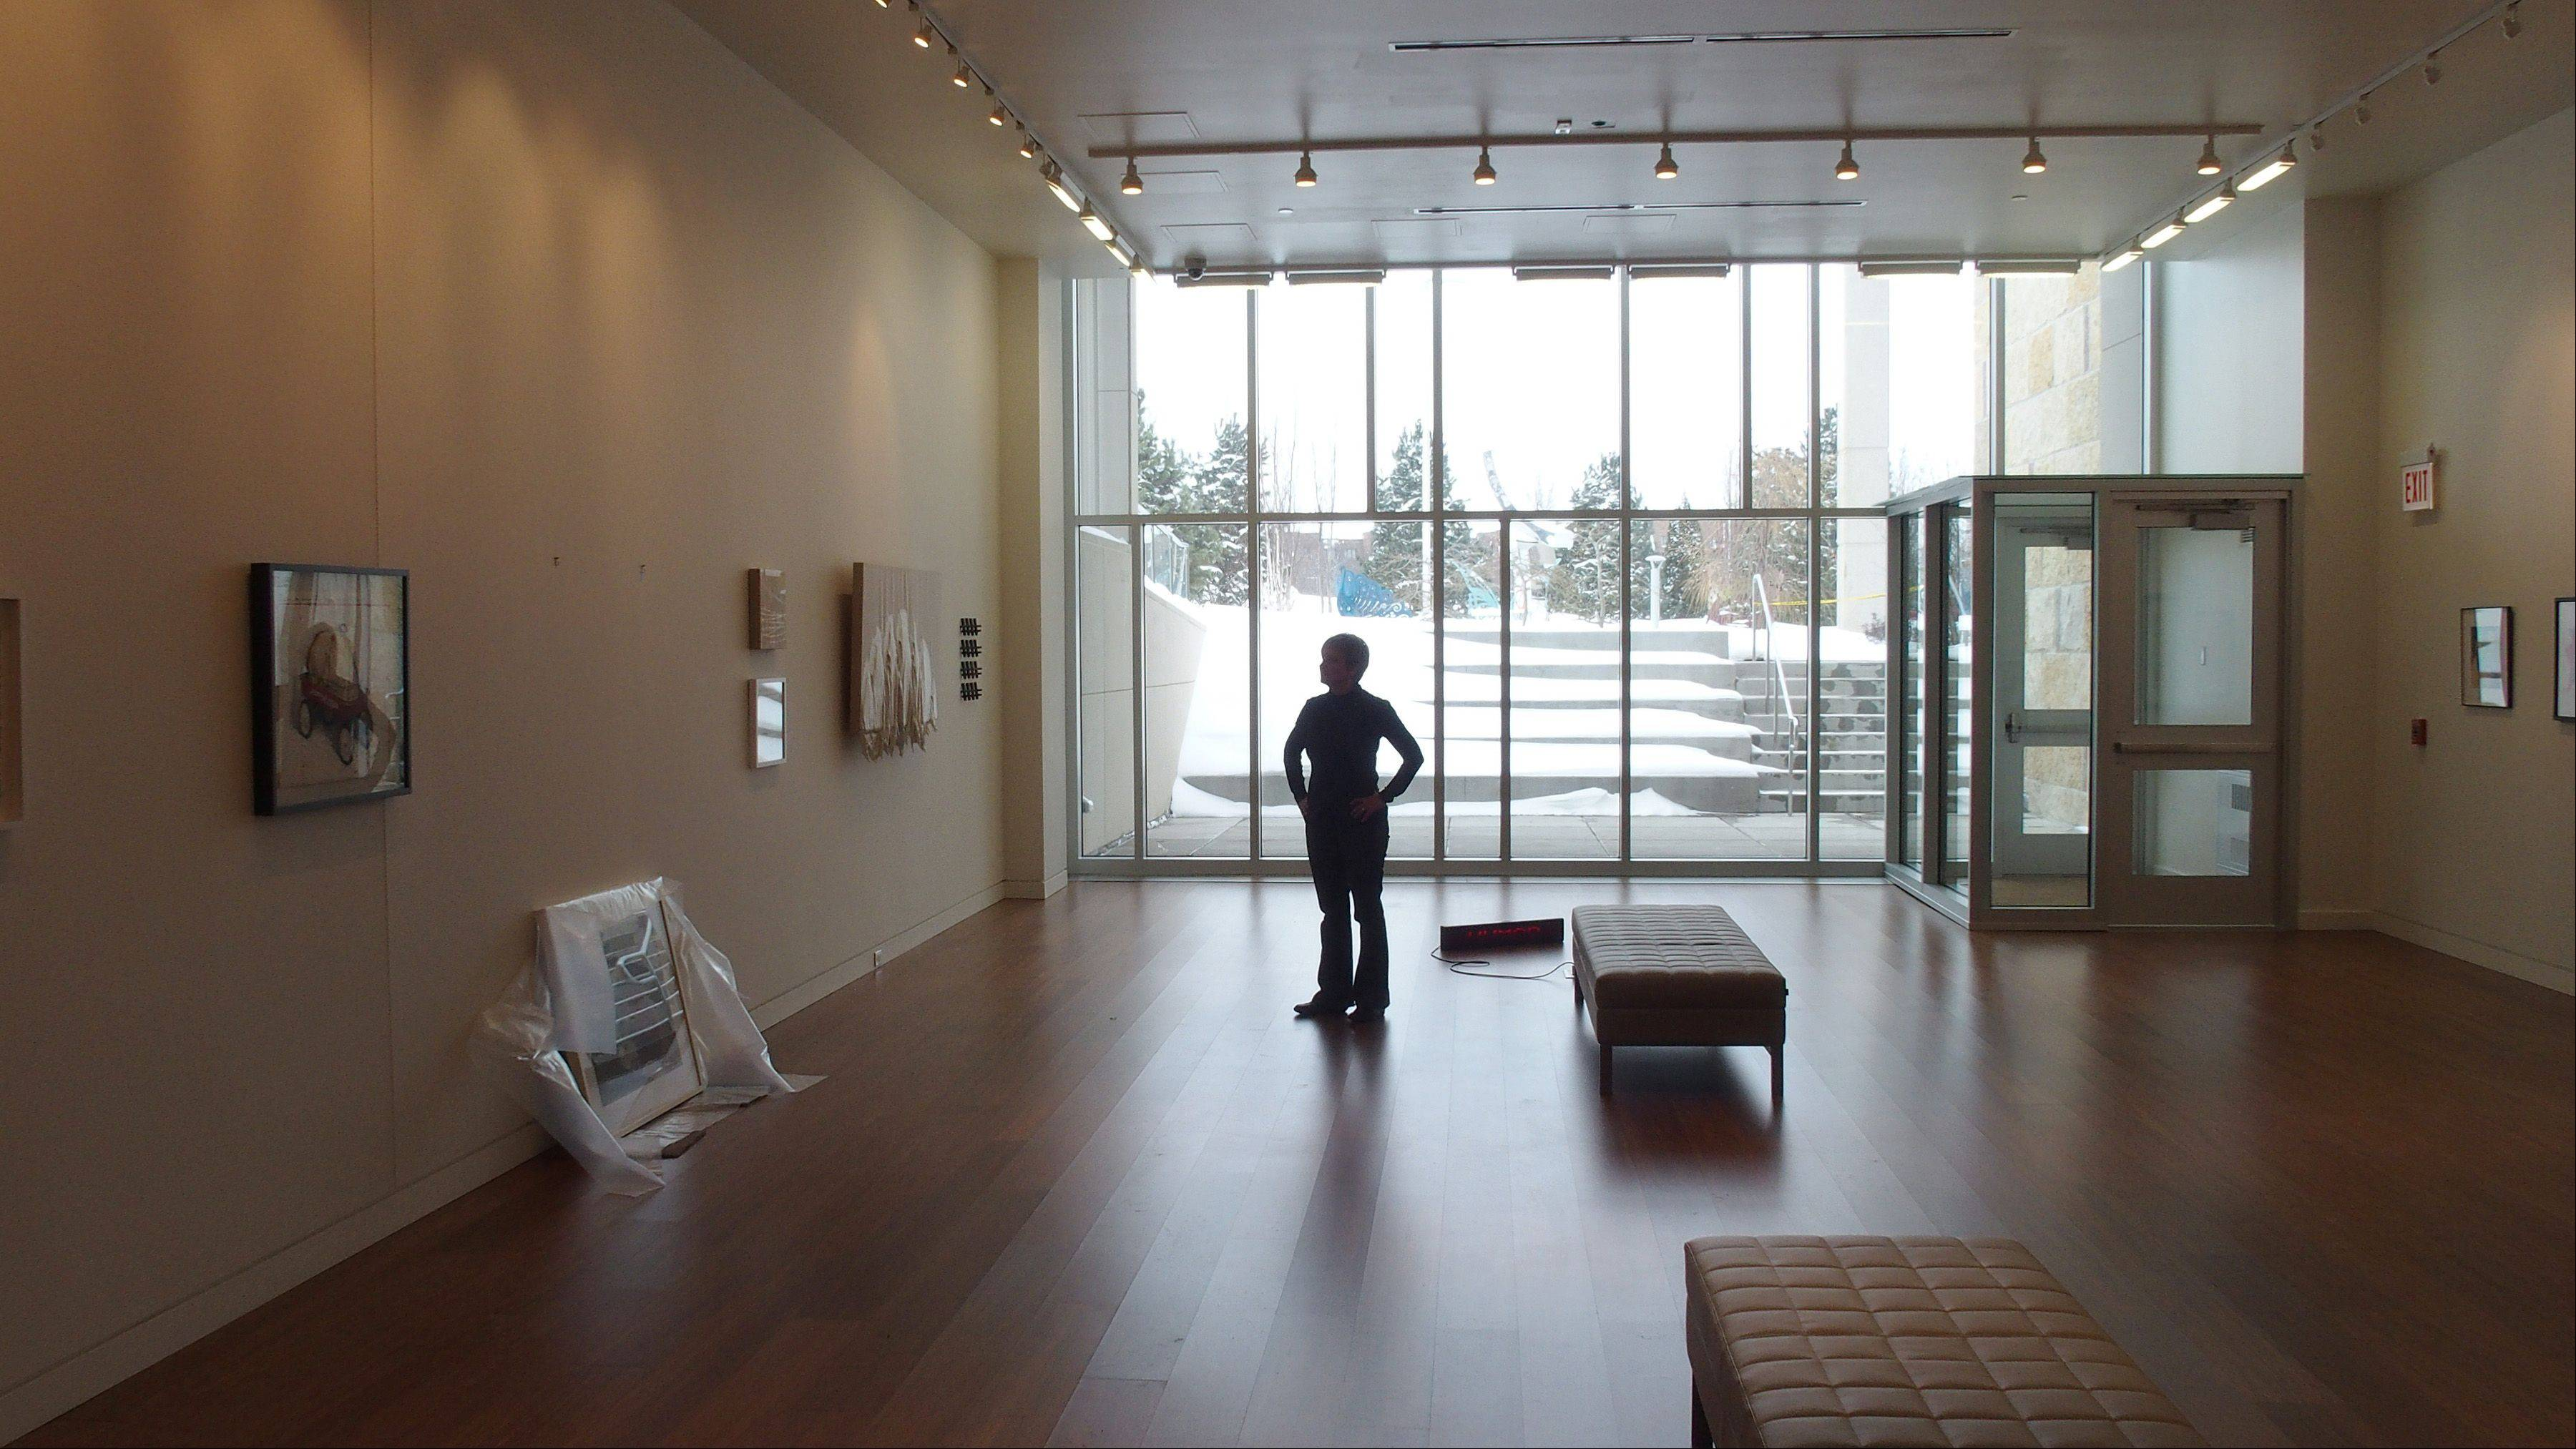 The gallery features high ceilings, heated sustainable bamboo floors and an outdoor courtyard visible through glass windows.